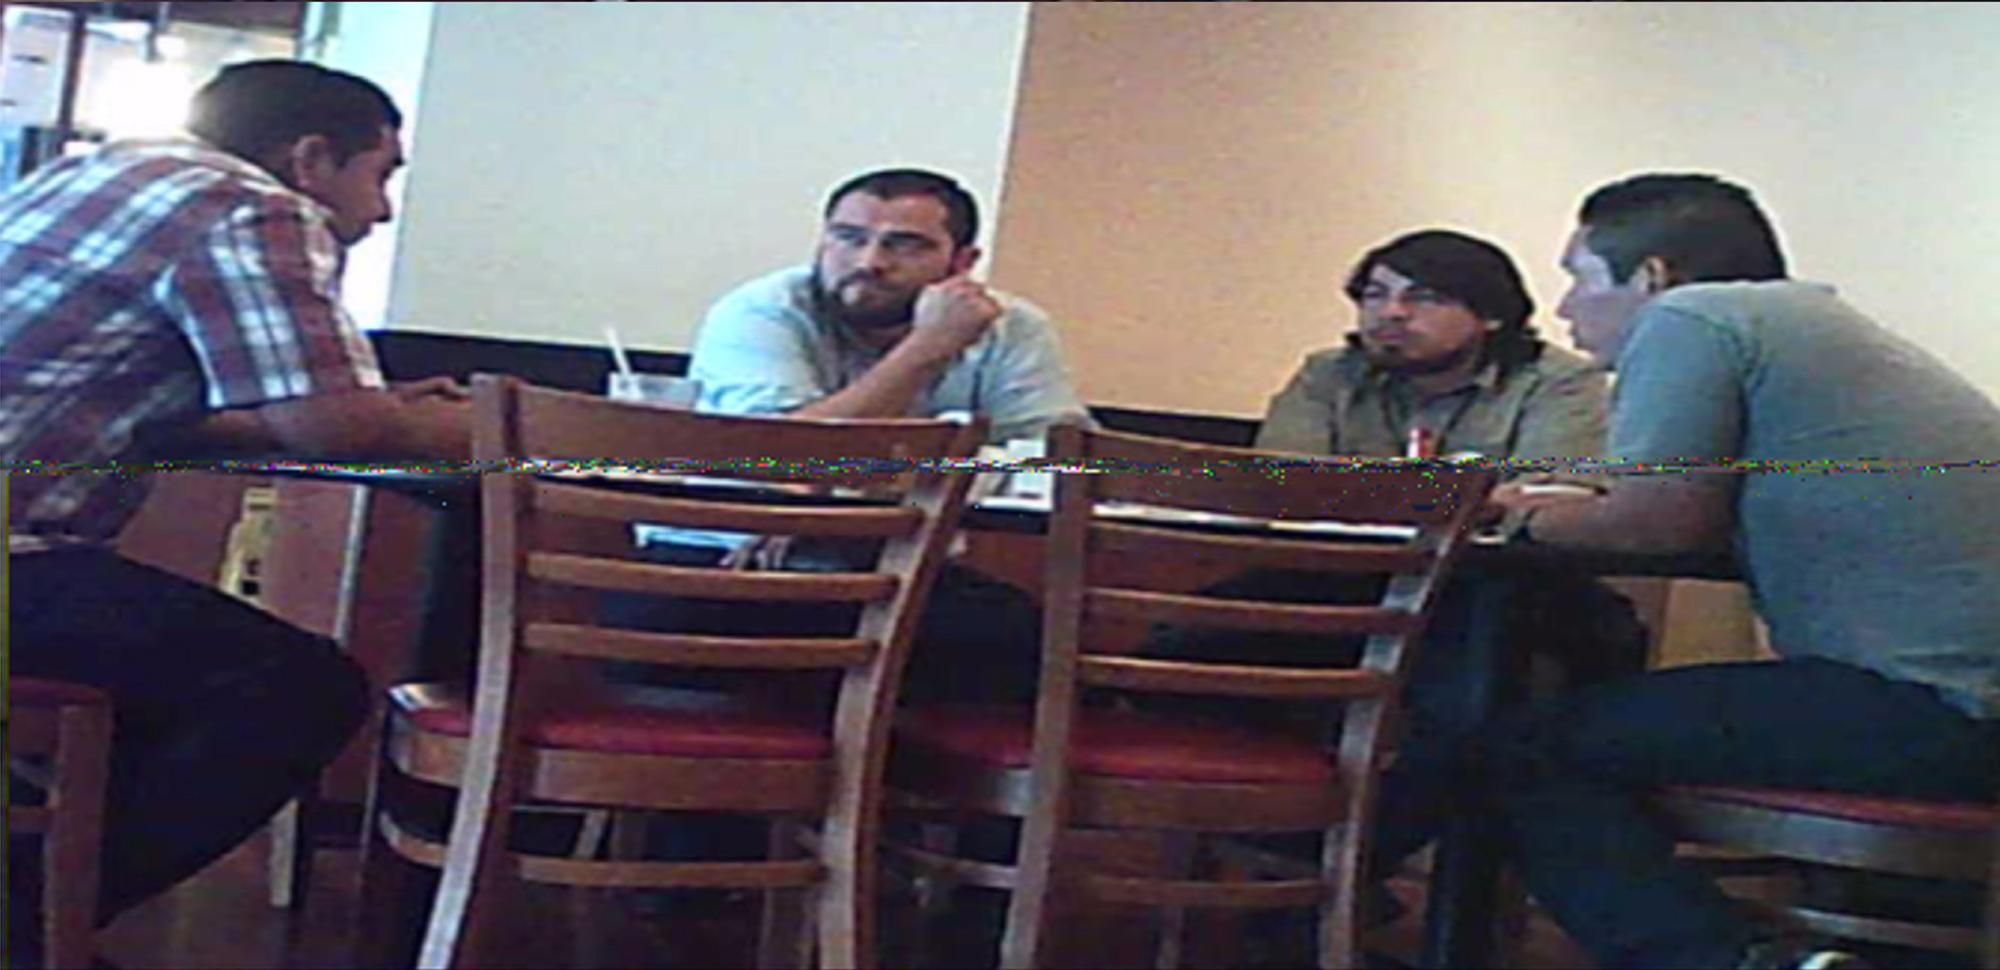 In 2015, the Police mounted 50 surveillance operations targeting gang leaders. In the course of one of these operations, on December 21, 2015, agents photographed Minister Mario Durán (then-councilman, center-left) and Carlos Marroquín (then-employee of the Mayor's Office, center-right) with Renuente (far-left, checkered shirt) and White of Iberias (far right), of the Mara Salvatrucha. El Faro archival photo obtained from National Civil Police.